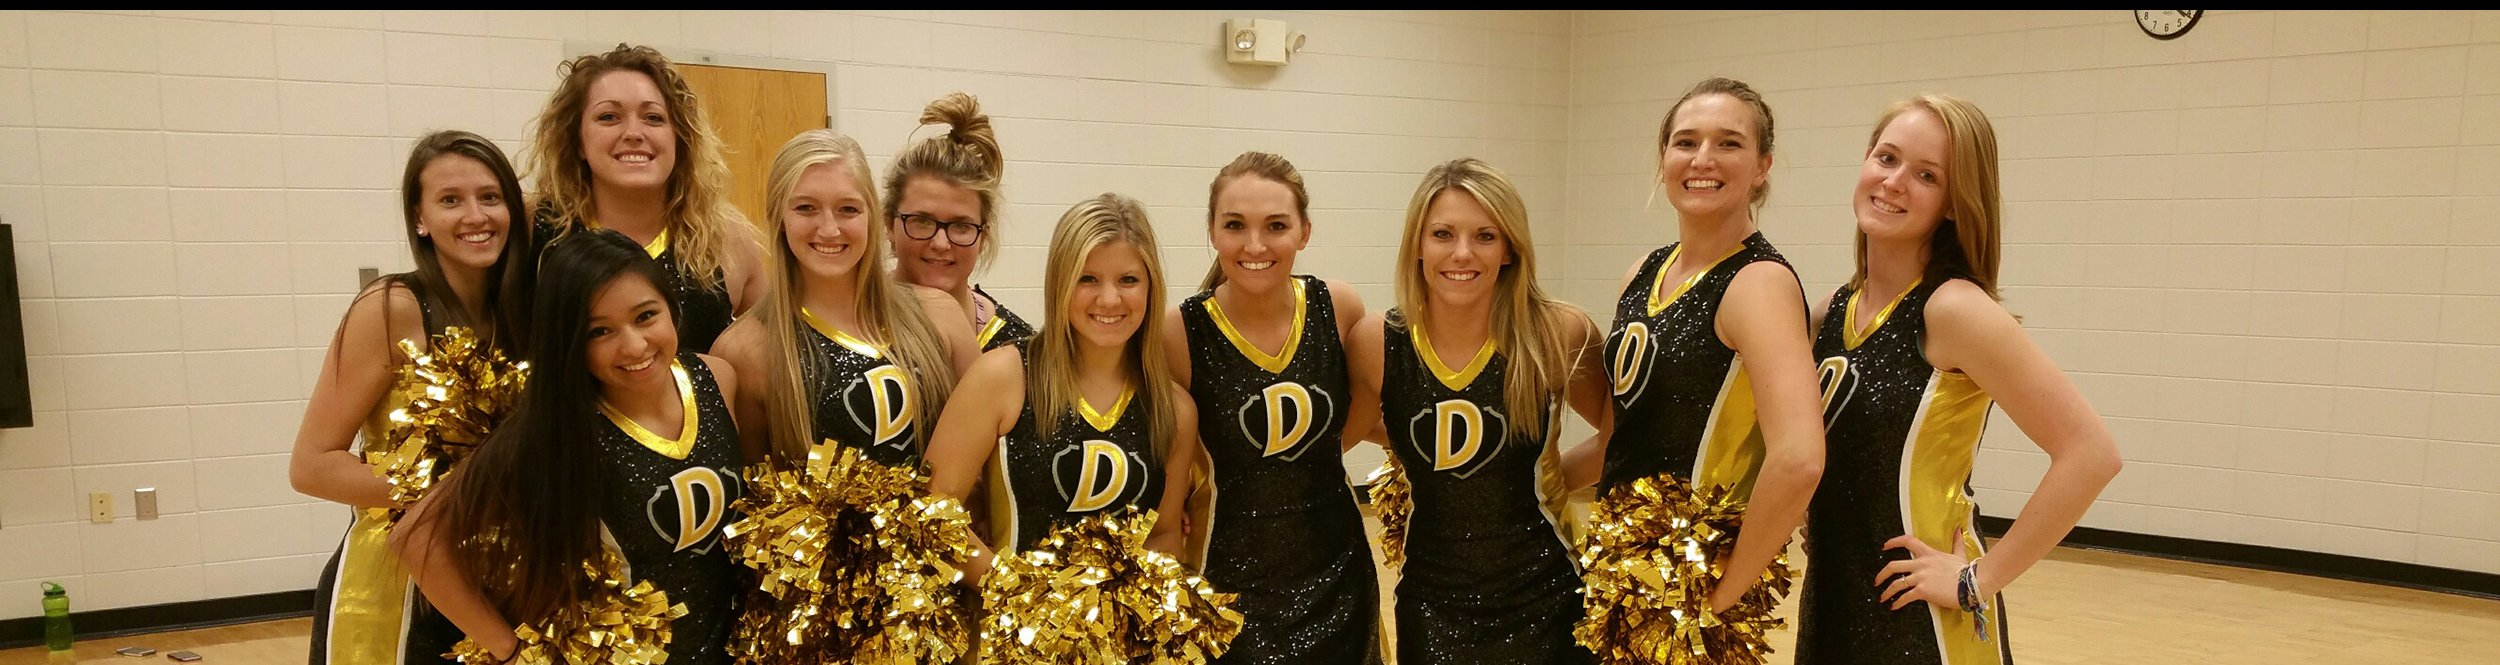 The Dordt dance team poses and smiles.